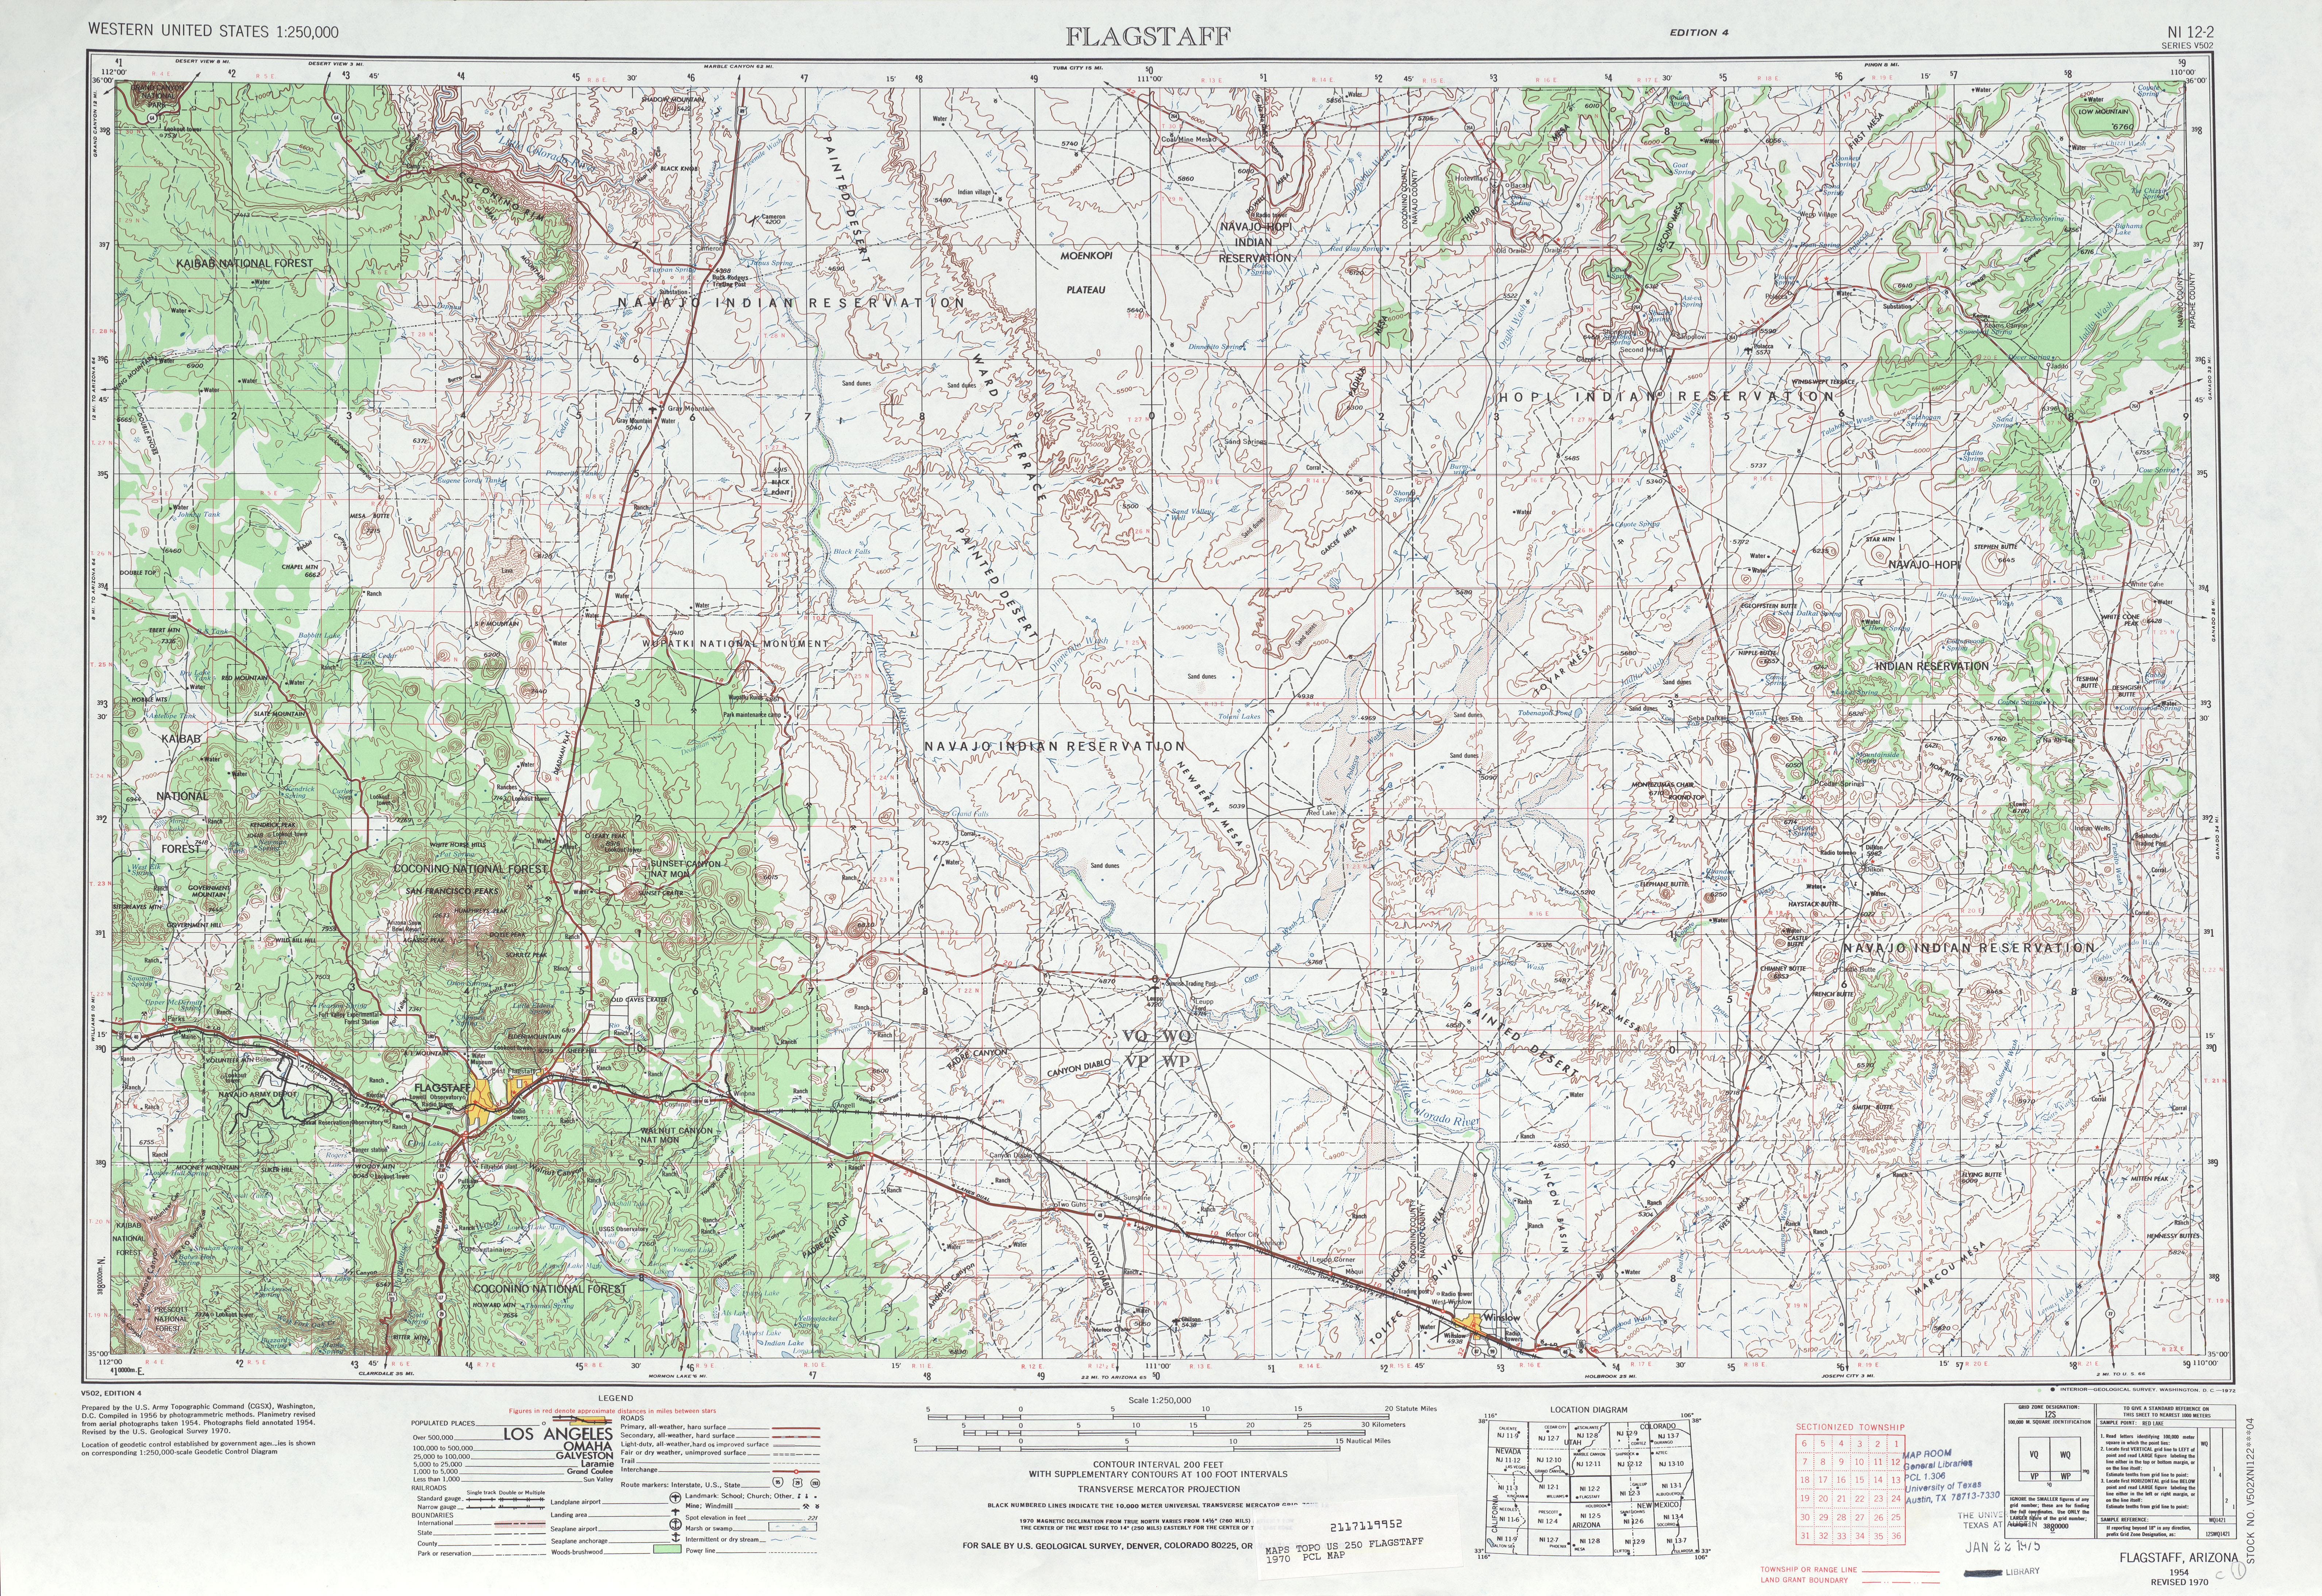 Flagstaff Topographic Map Sheet, United States 1970